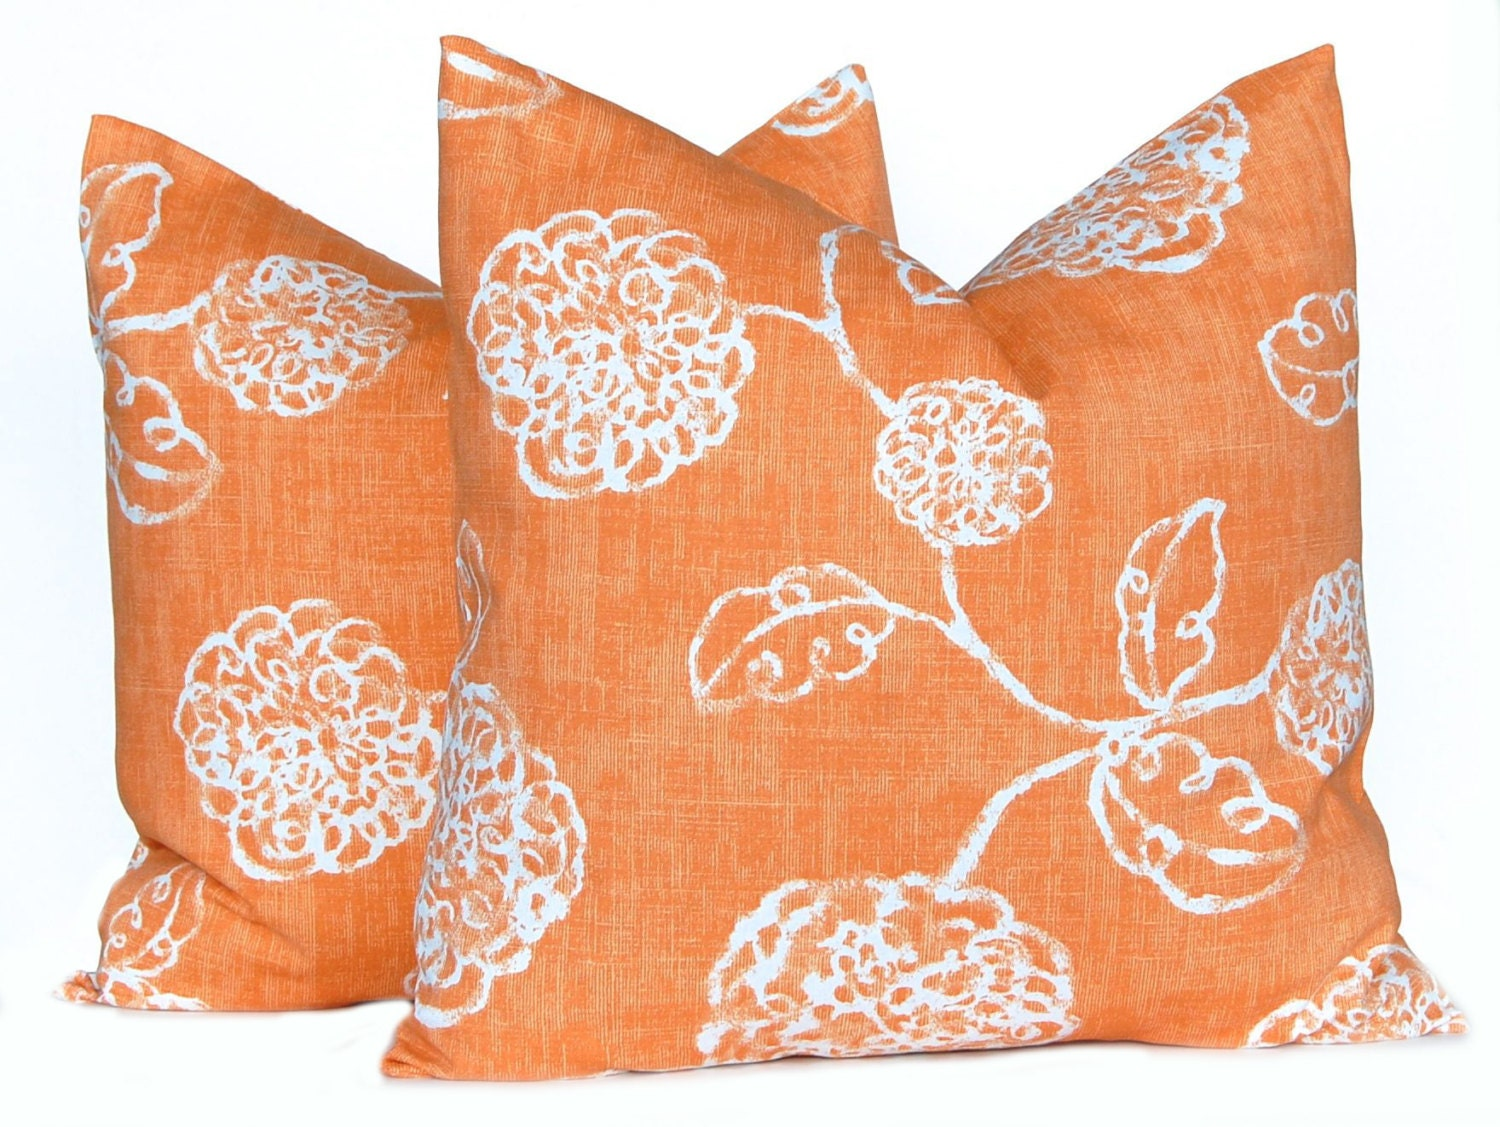 Decorative Pillows For Fall : Fall Pillow Covers Orange and White Pillow Covers Autumn